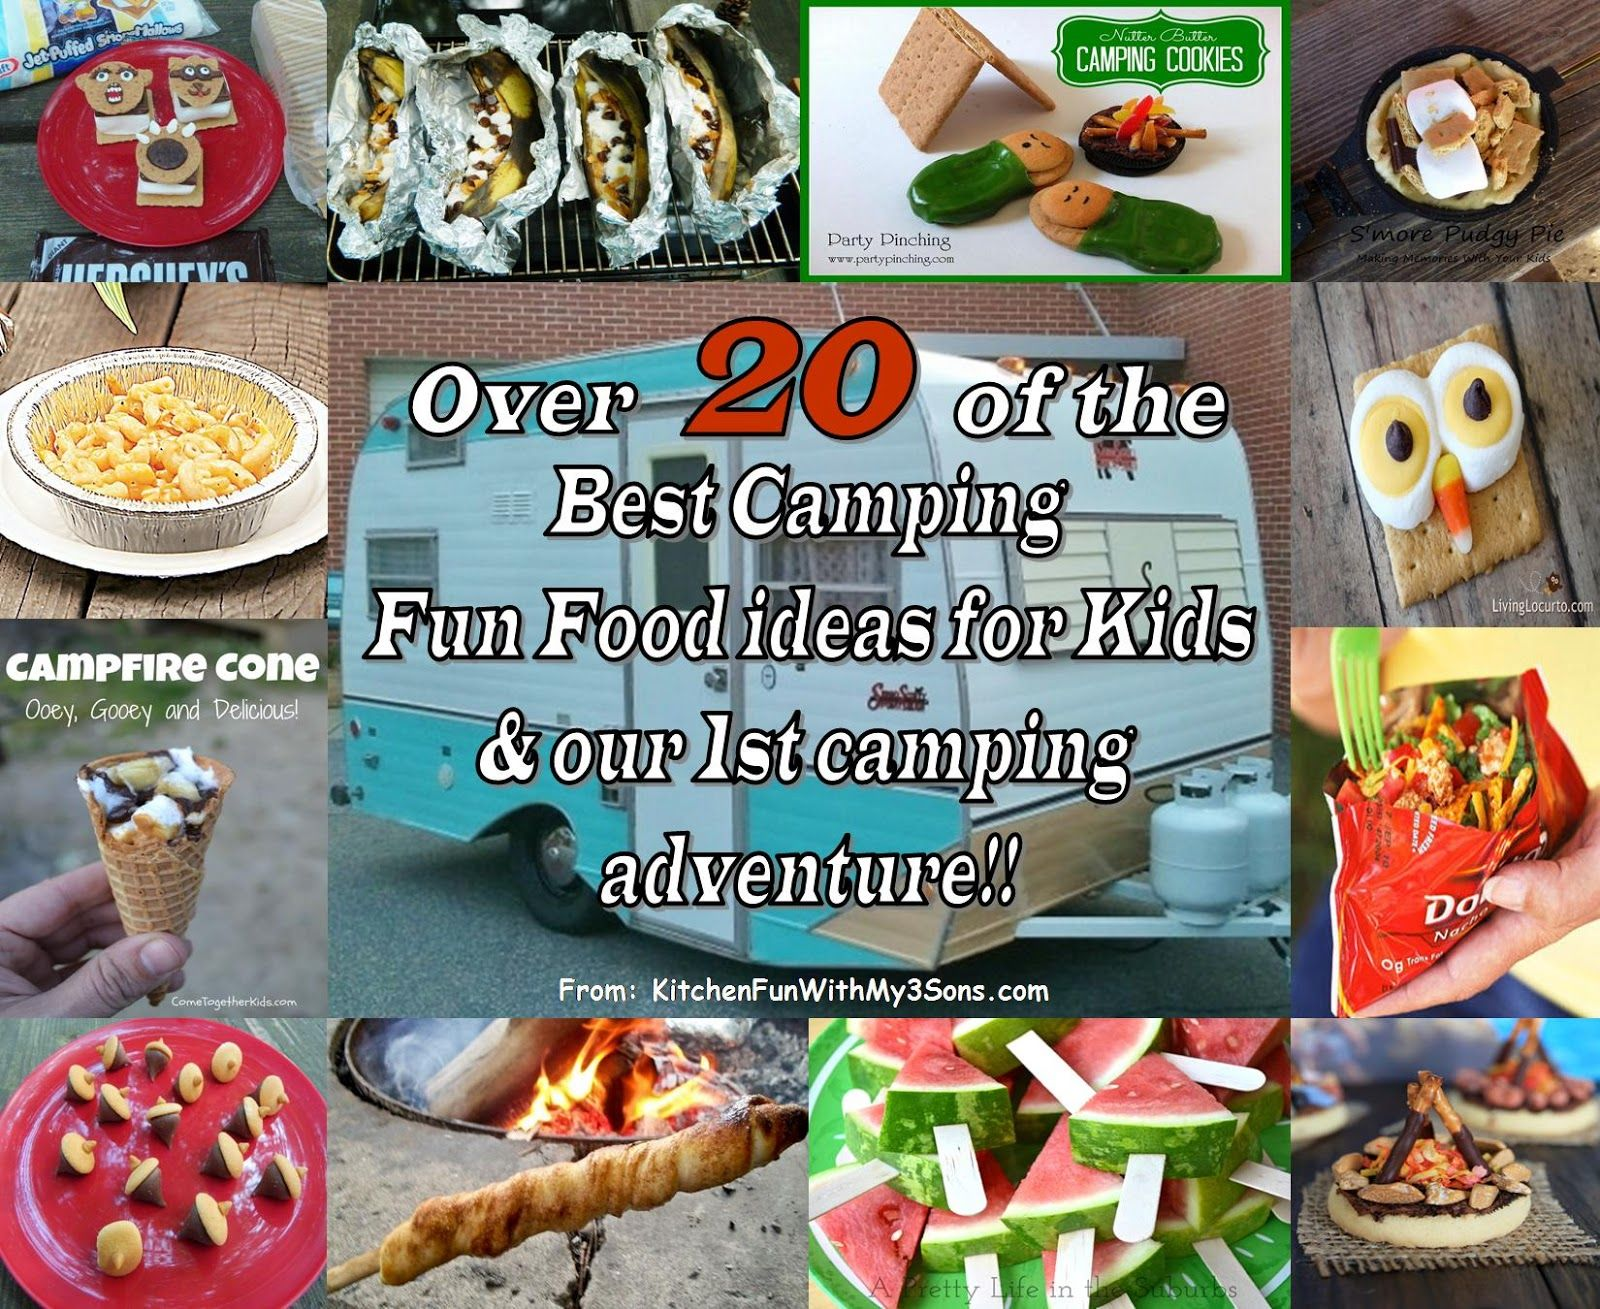 Our 1st Camping Adventure And Over 20 Of The Best Fun Food Ideas For Kids